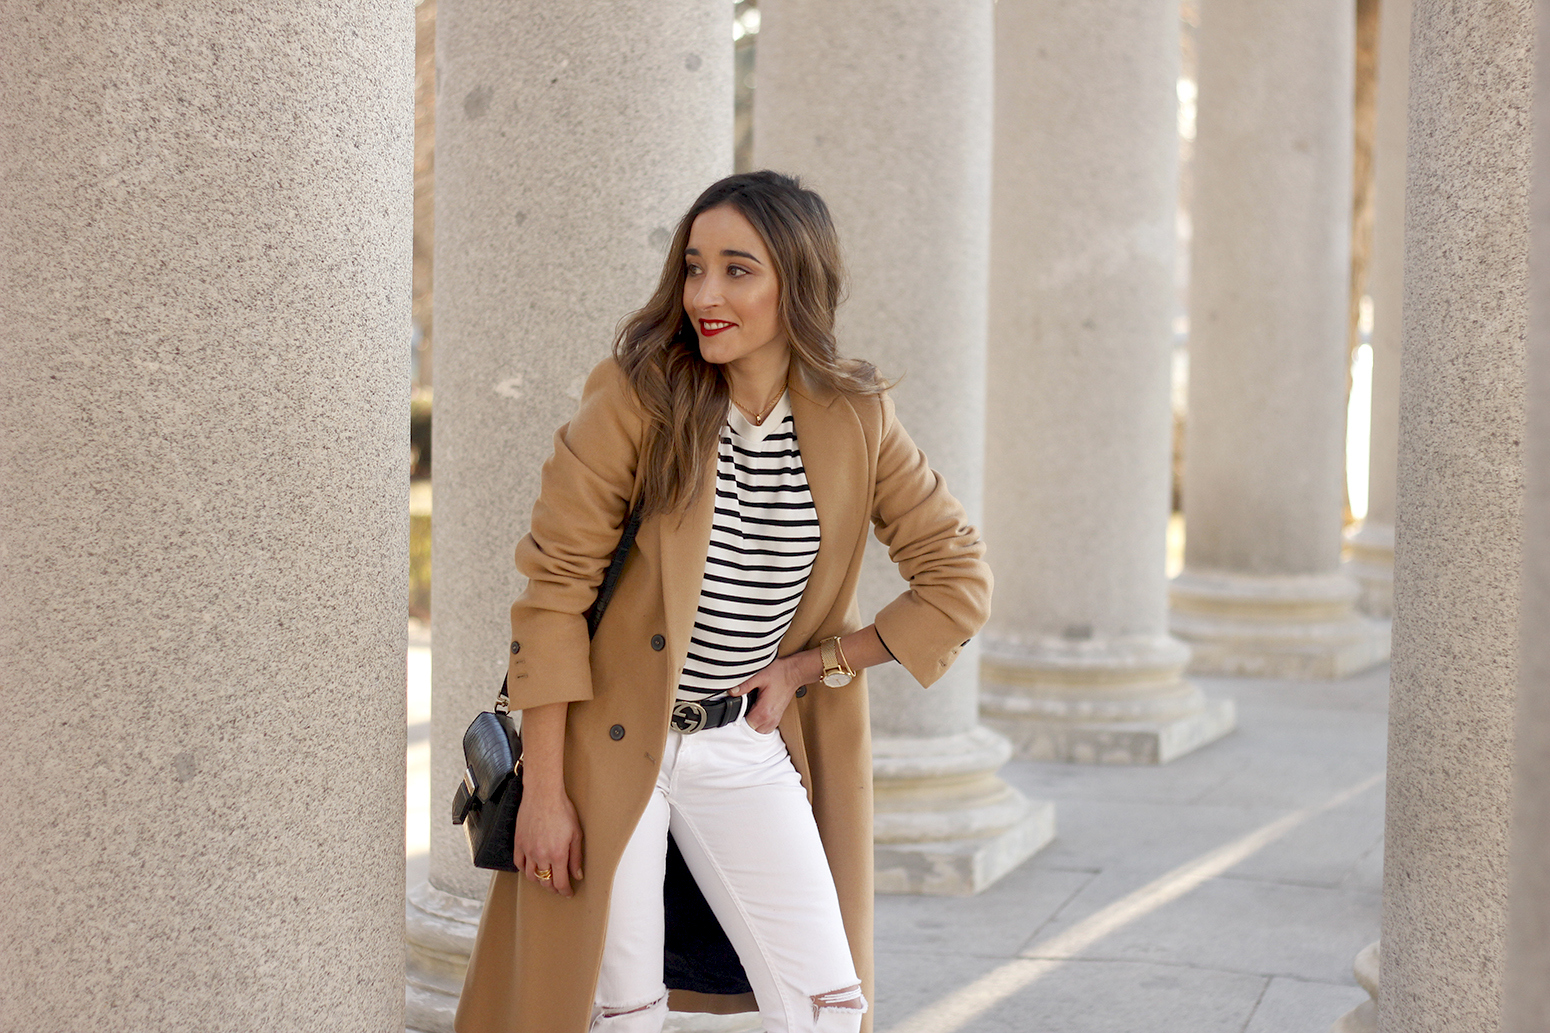 beige coat ripped jeans givenchy bag gucci belt street style outfit 201911